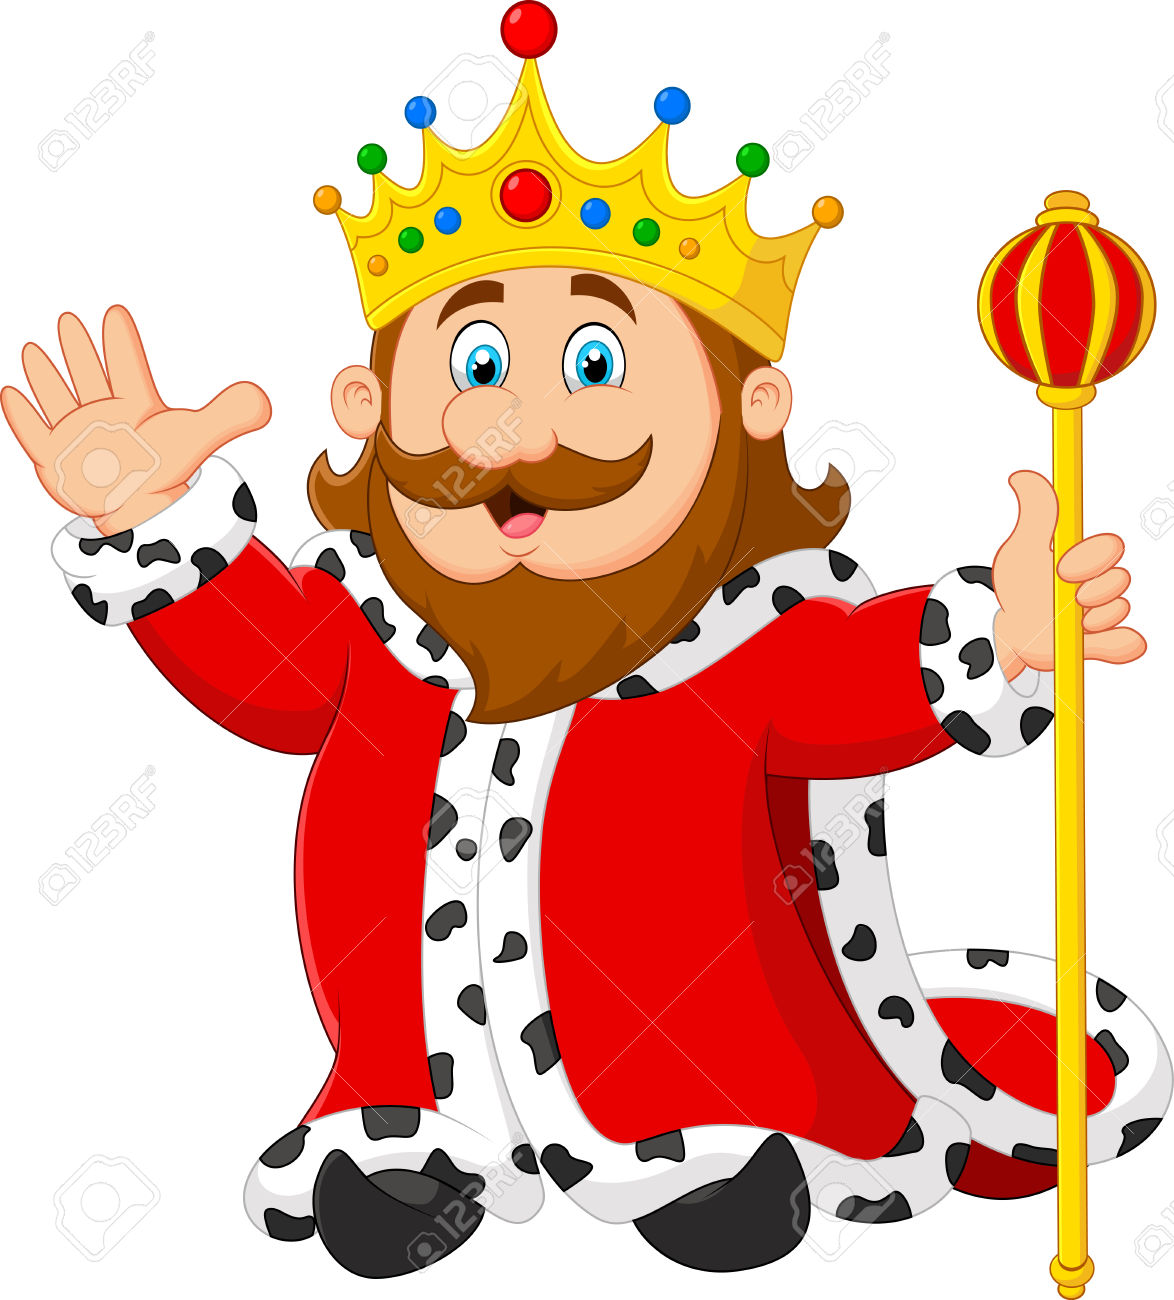 Collection of King clipart.